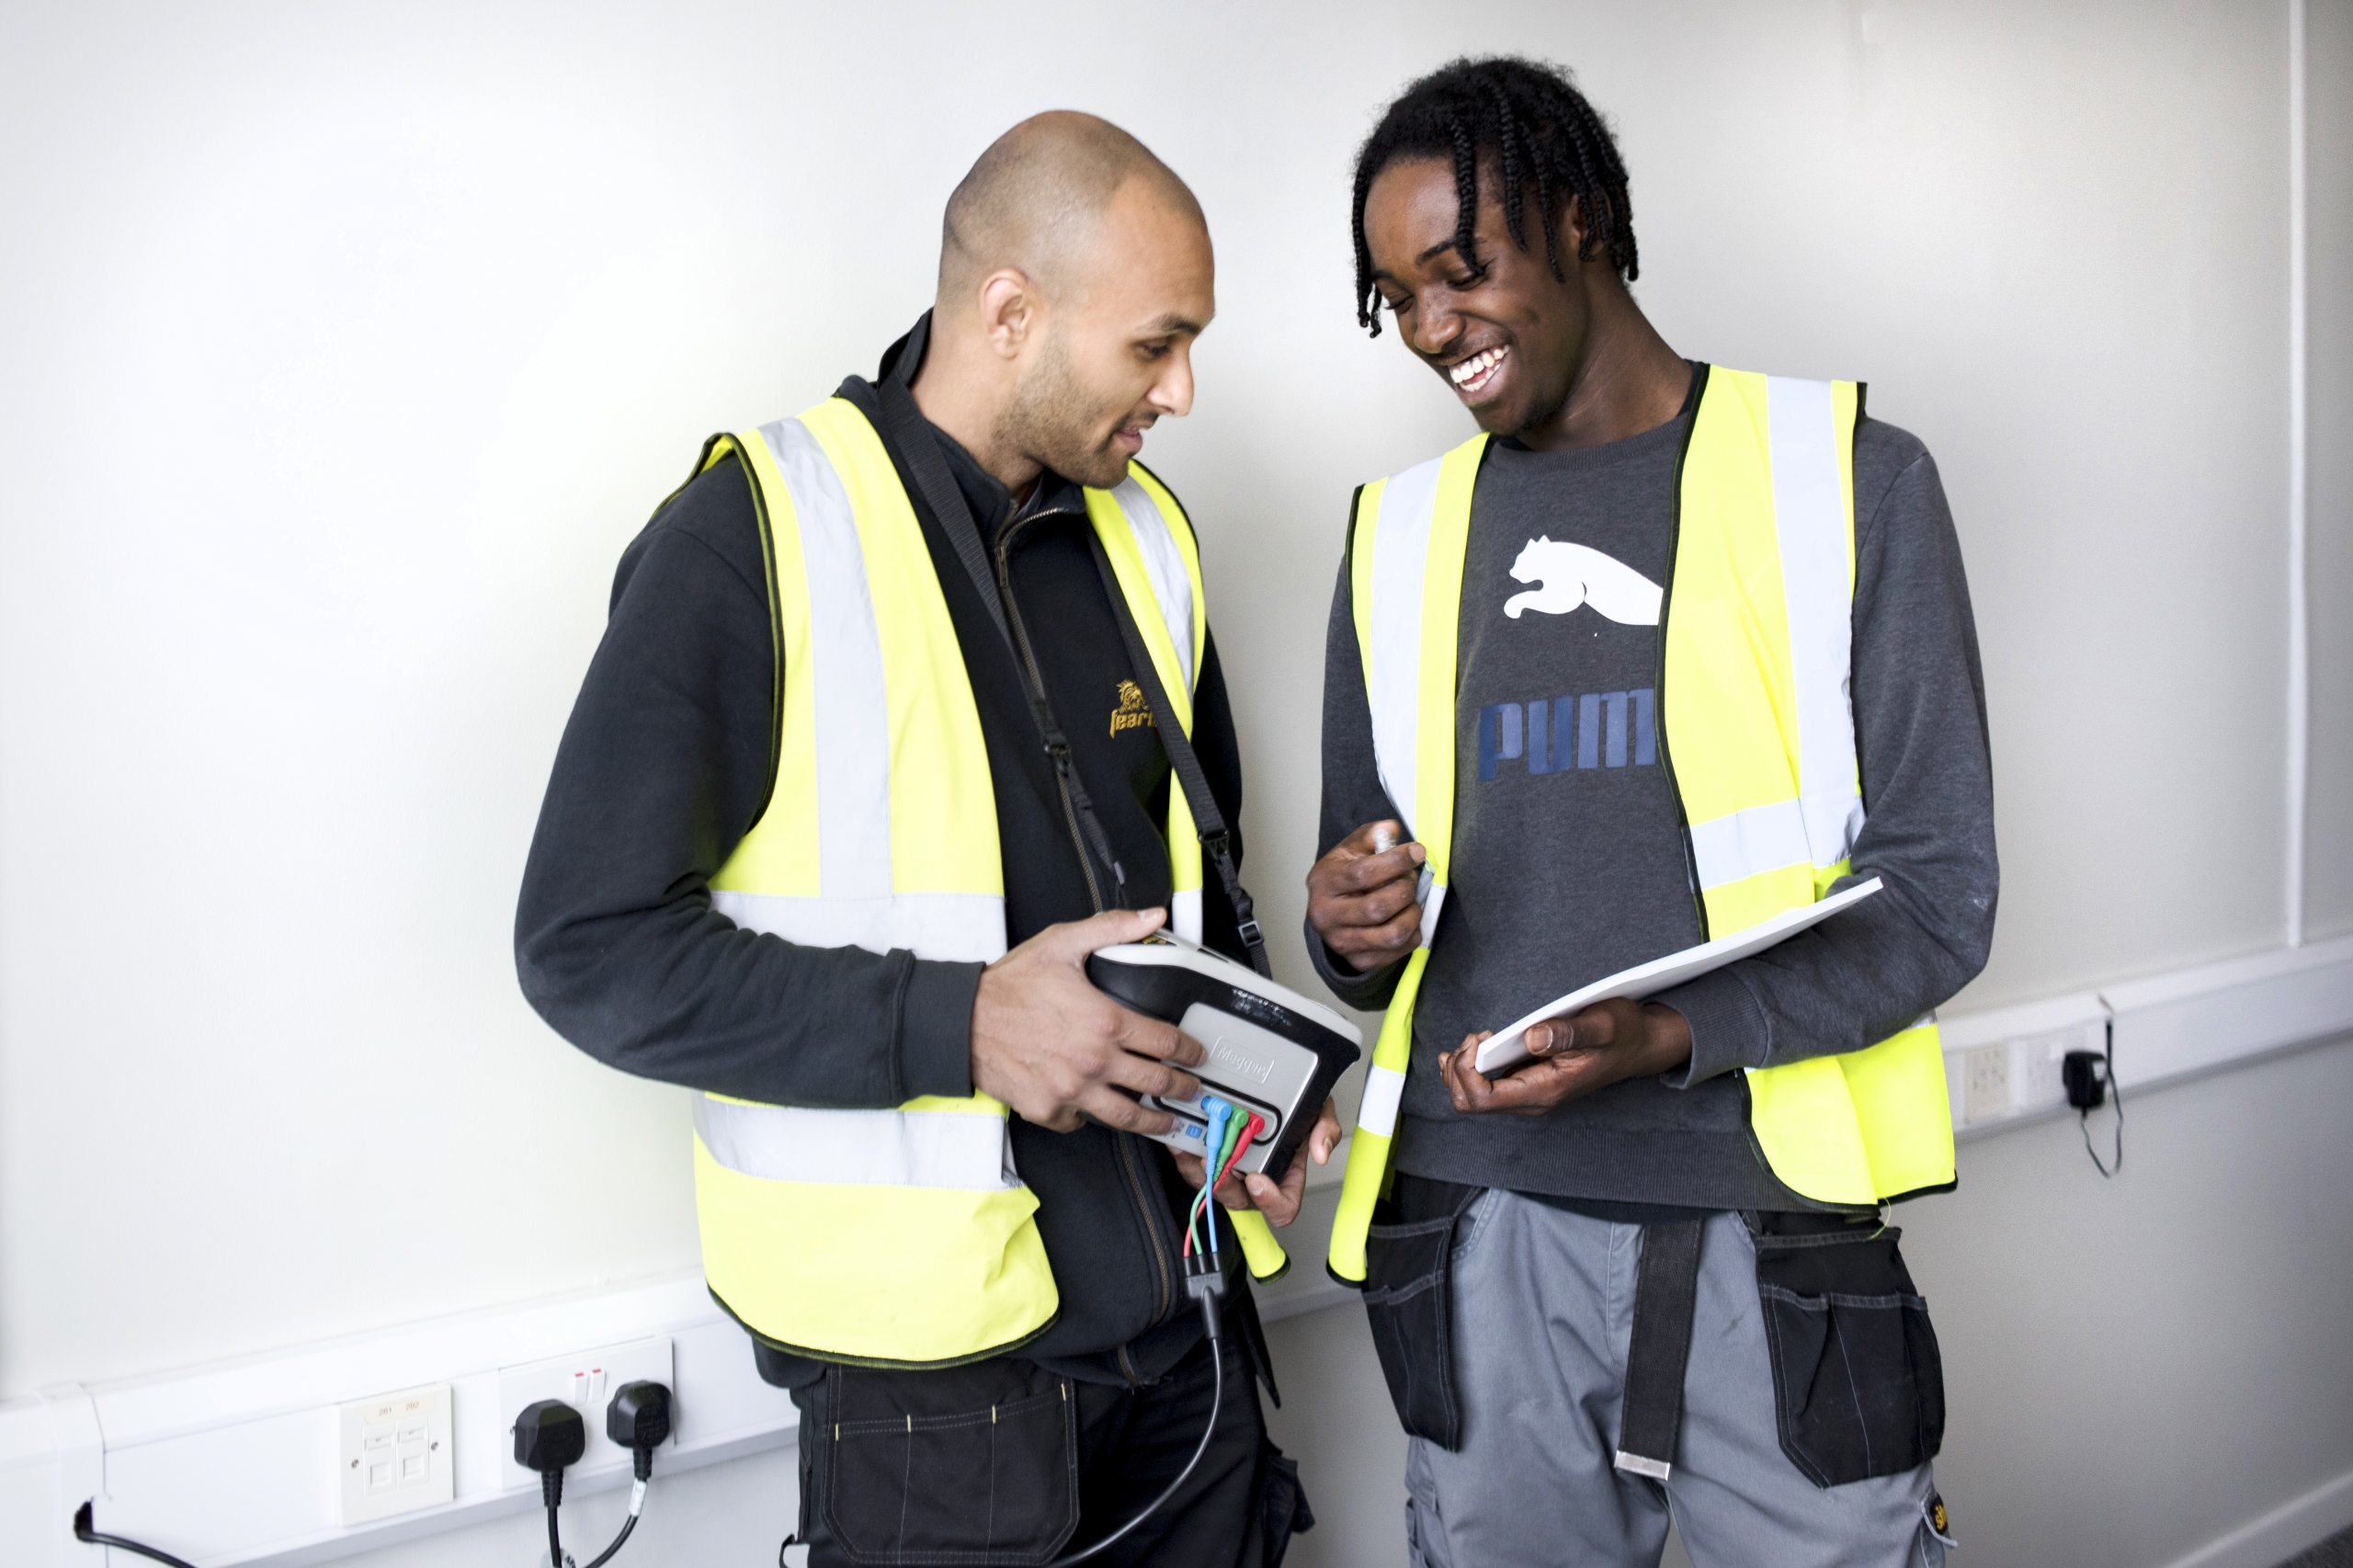 BAME apprentices laughing